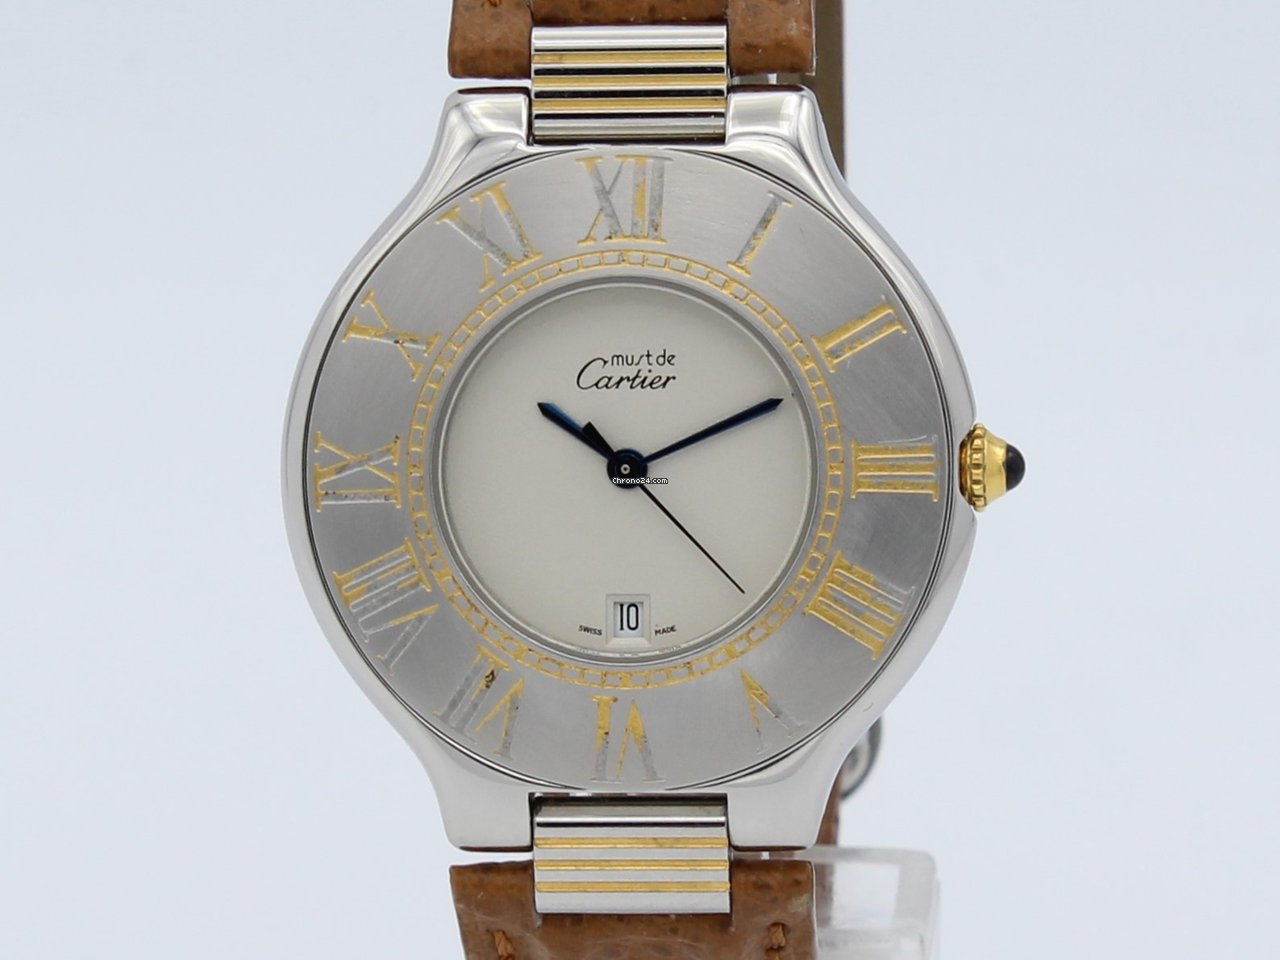 aaee5f0d0867 Cartier 21 Must de Cartier Quartz Steel Lady 126 000 P for  693 for sale  from a Trusted Seller on Chrono24